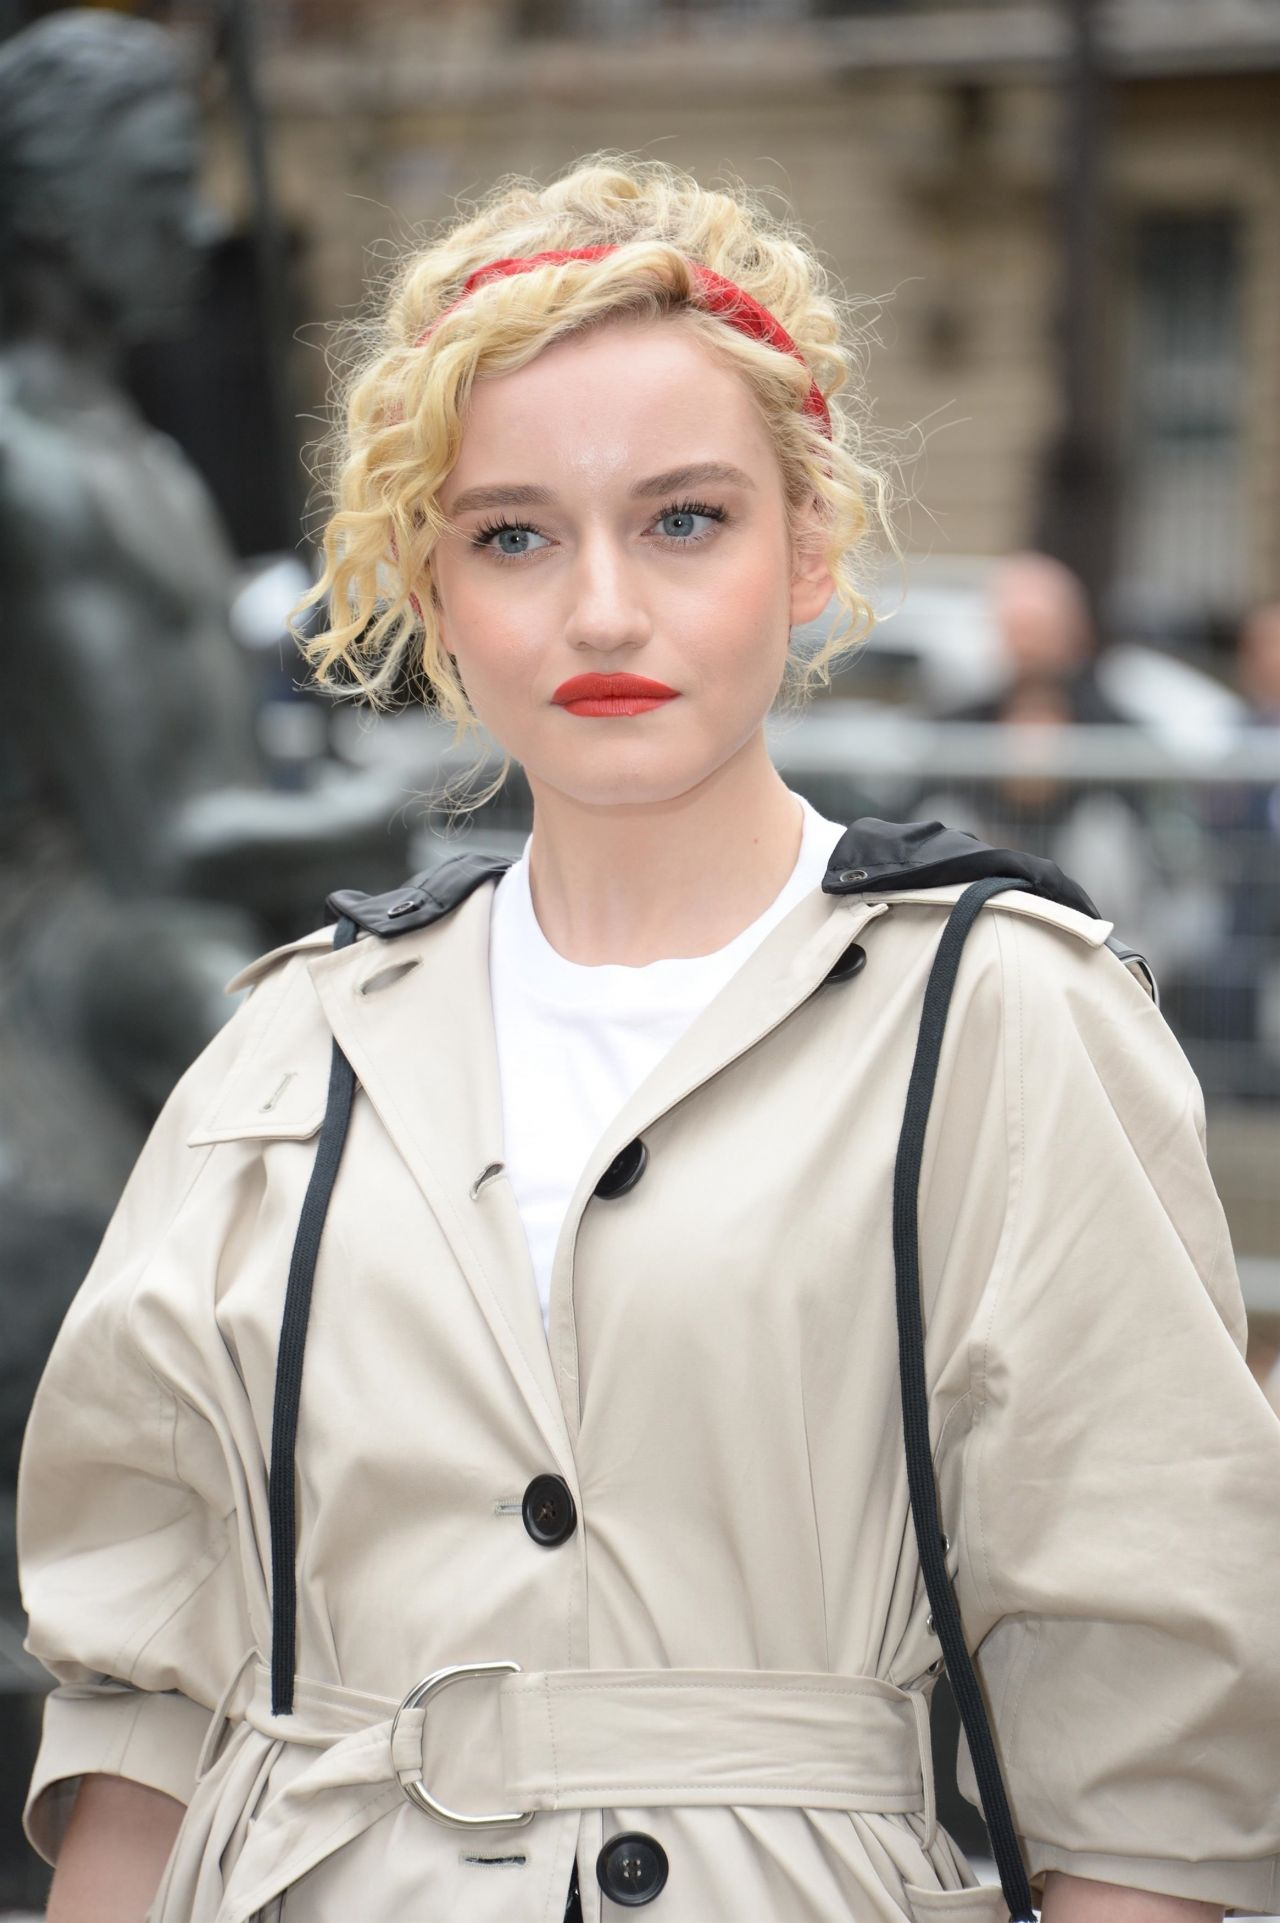 Julia Garner See Through 13 Photos: Julia Garner Latest Photos